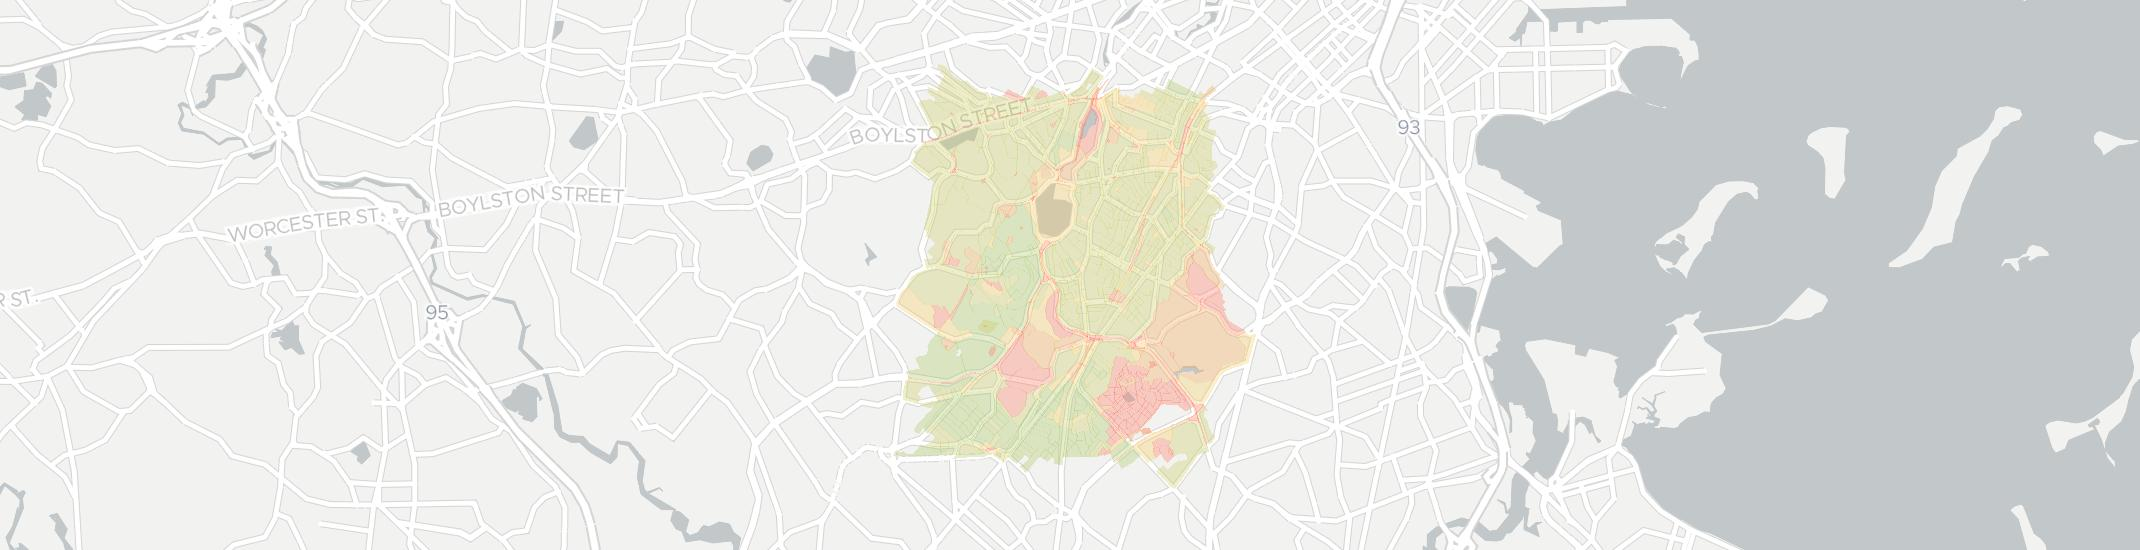 Jamaica Plain Internet Competition Map. Click for interactive map.